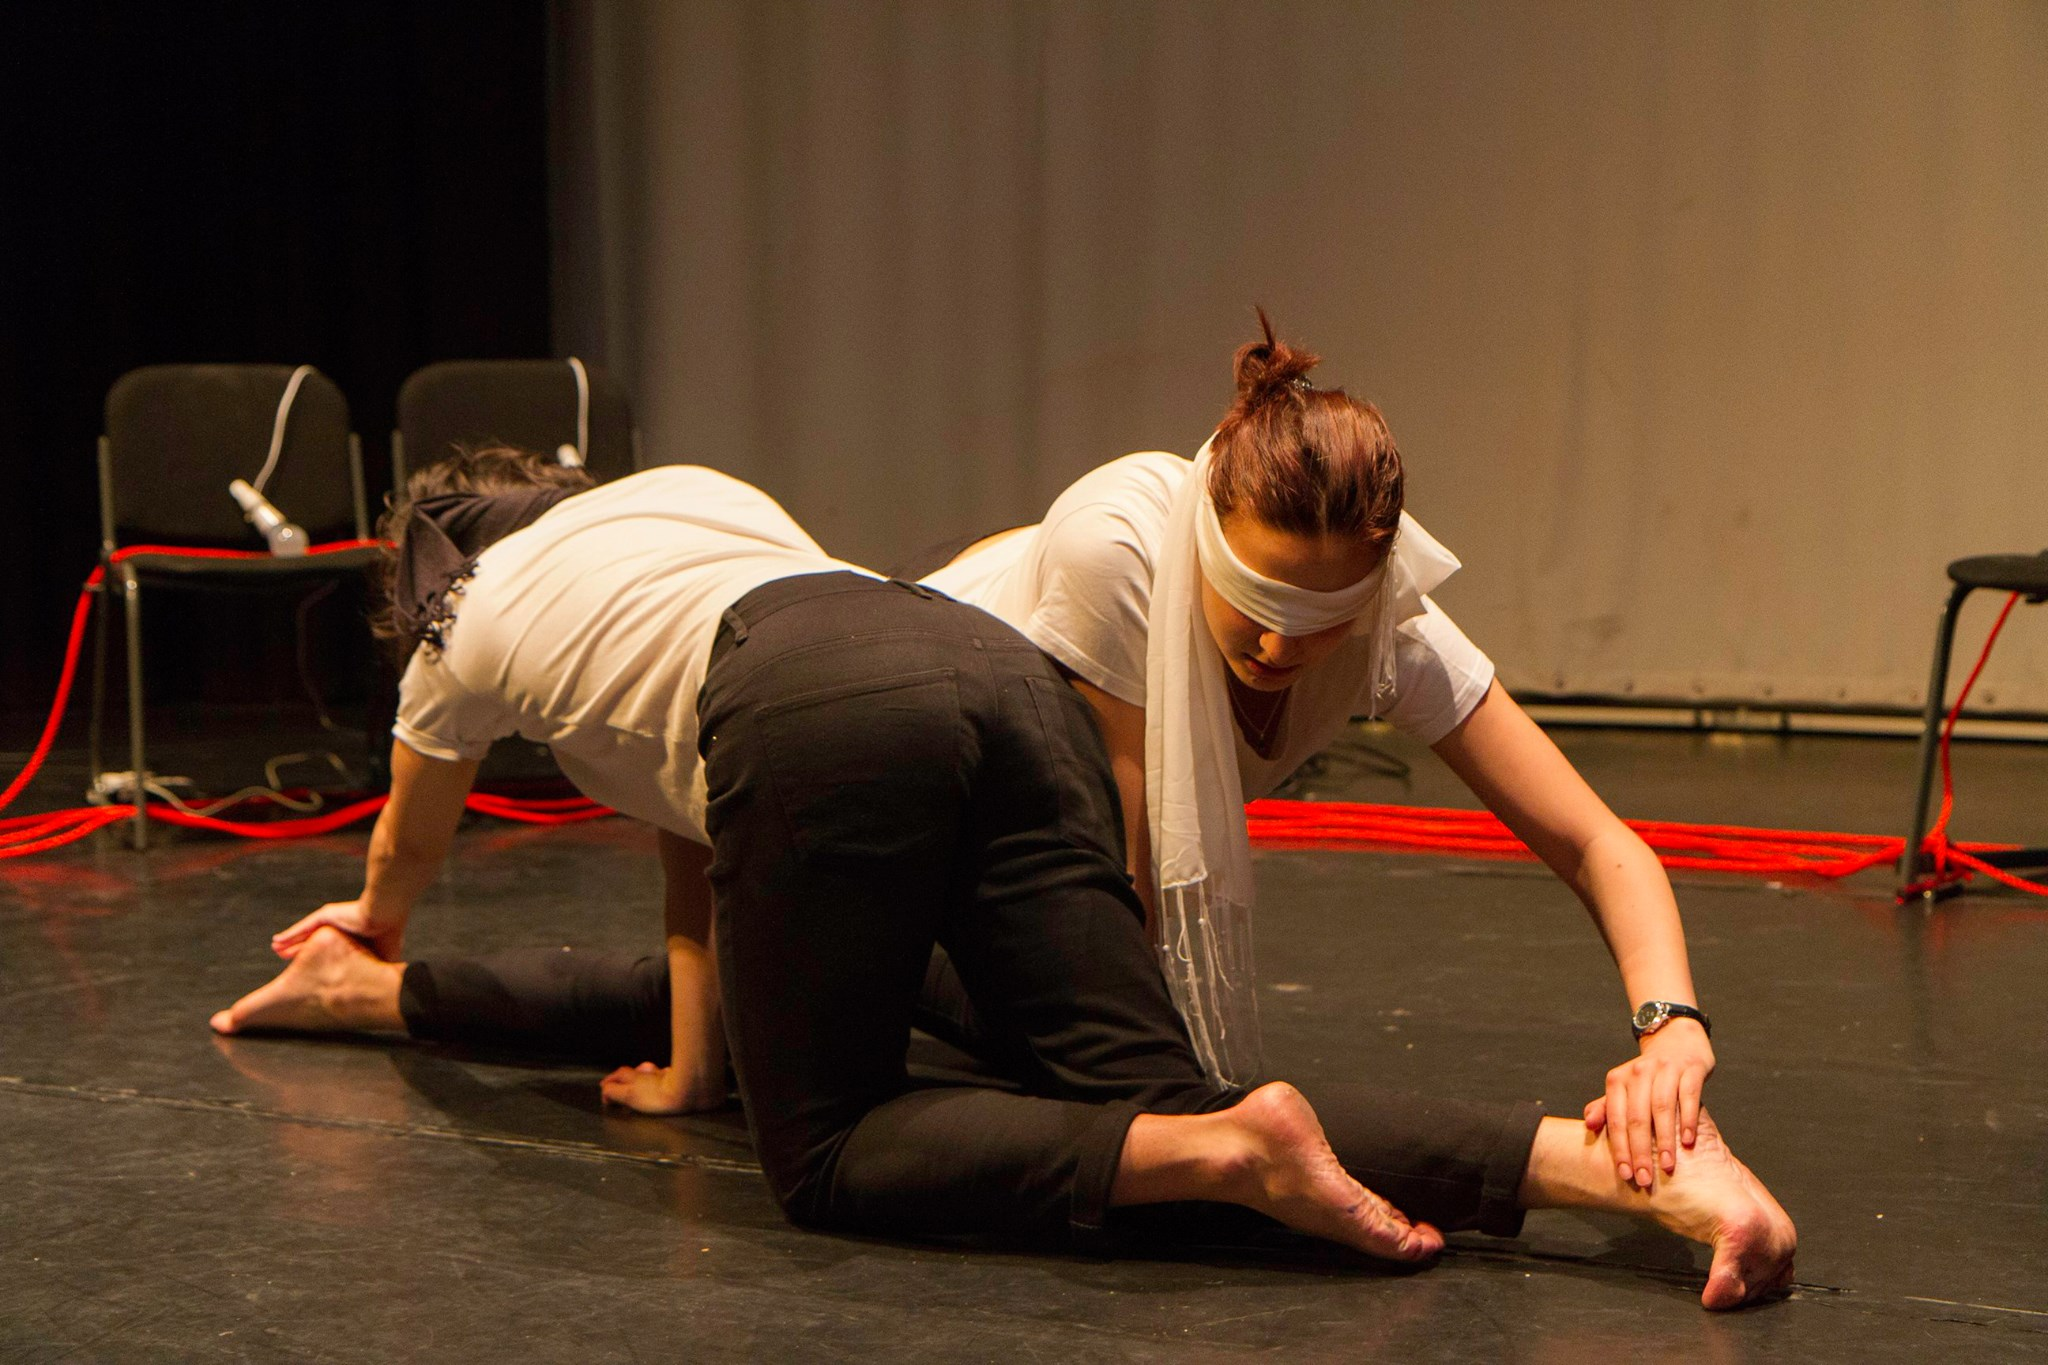 Show by Theatre Counterpoint. Photos taken by Mia Chen